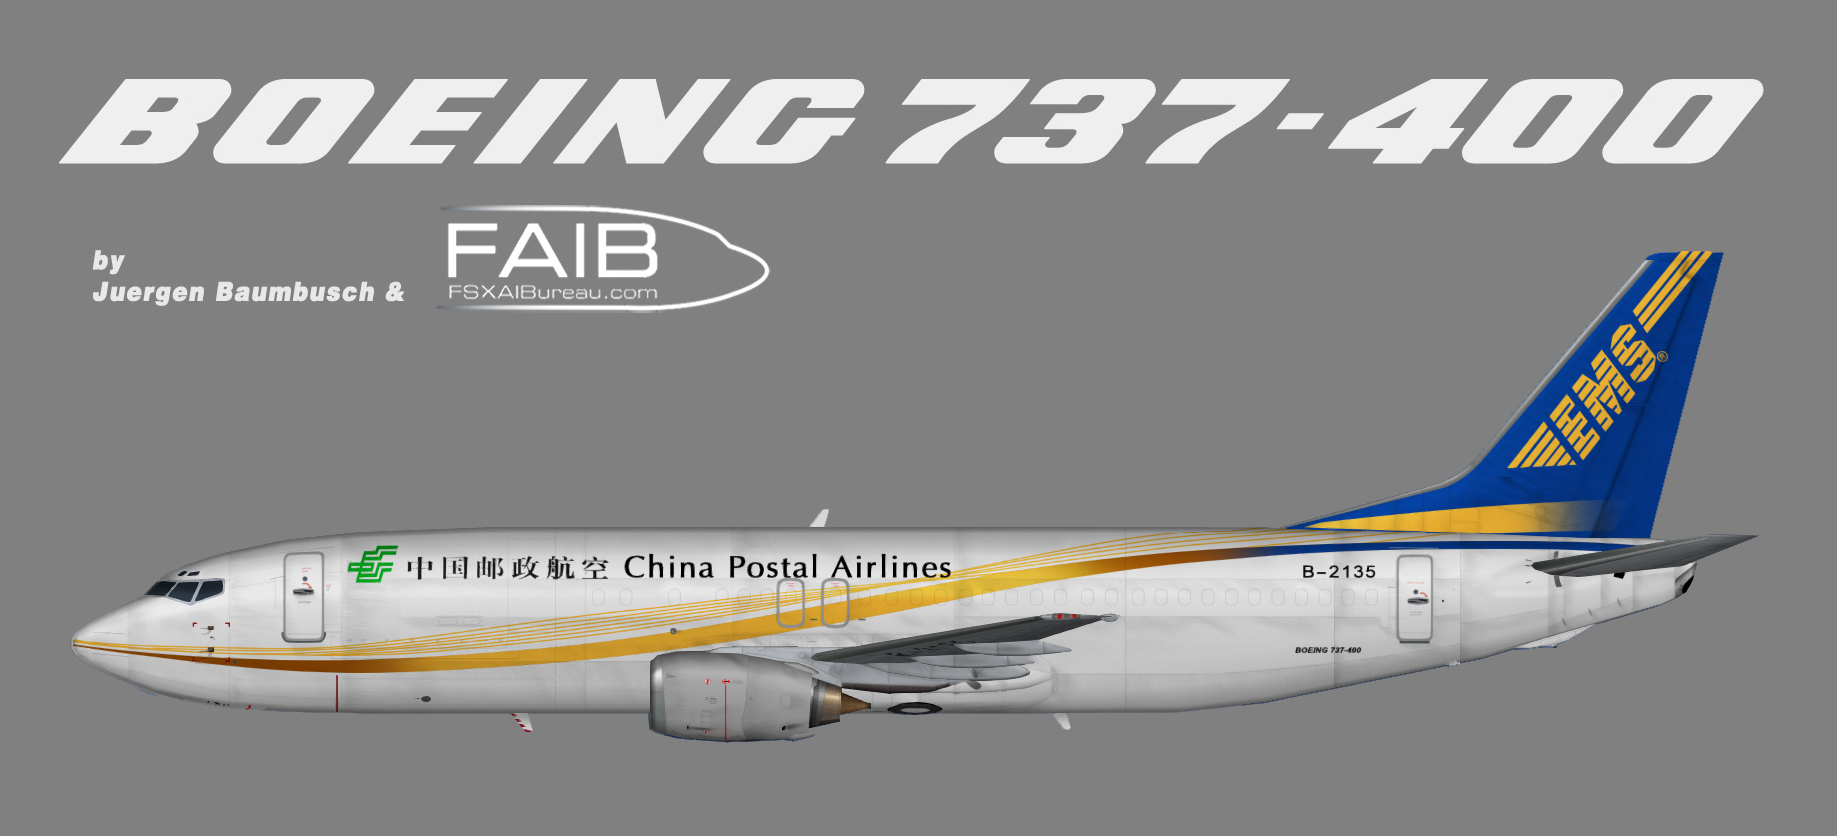 China Postal Airlines Boeing 737-400